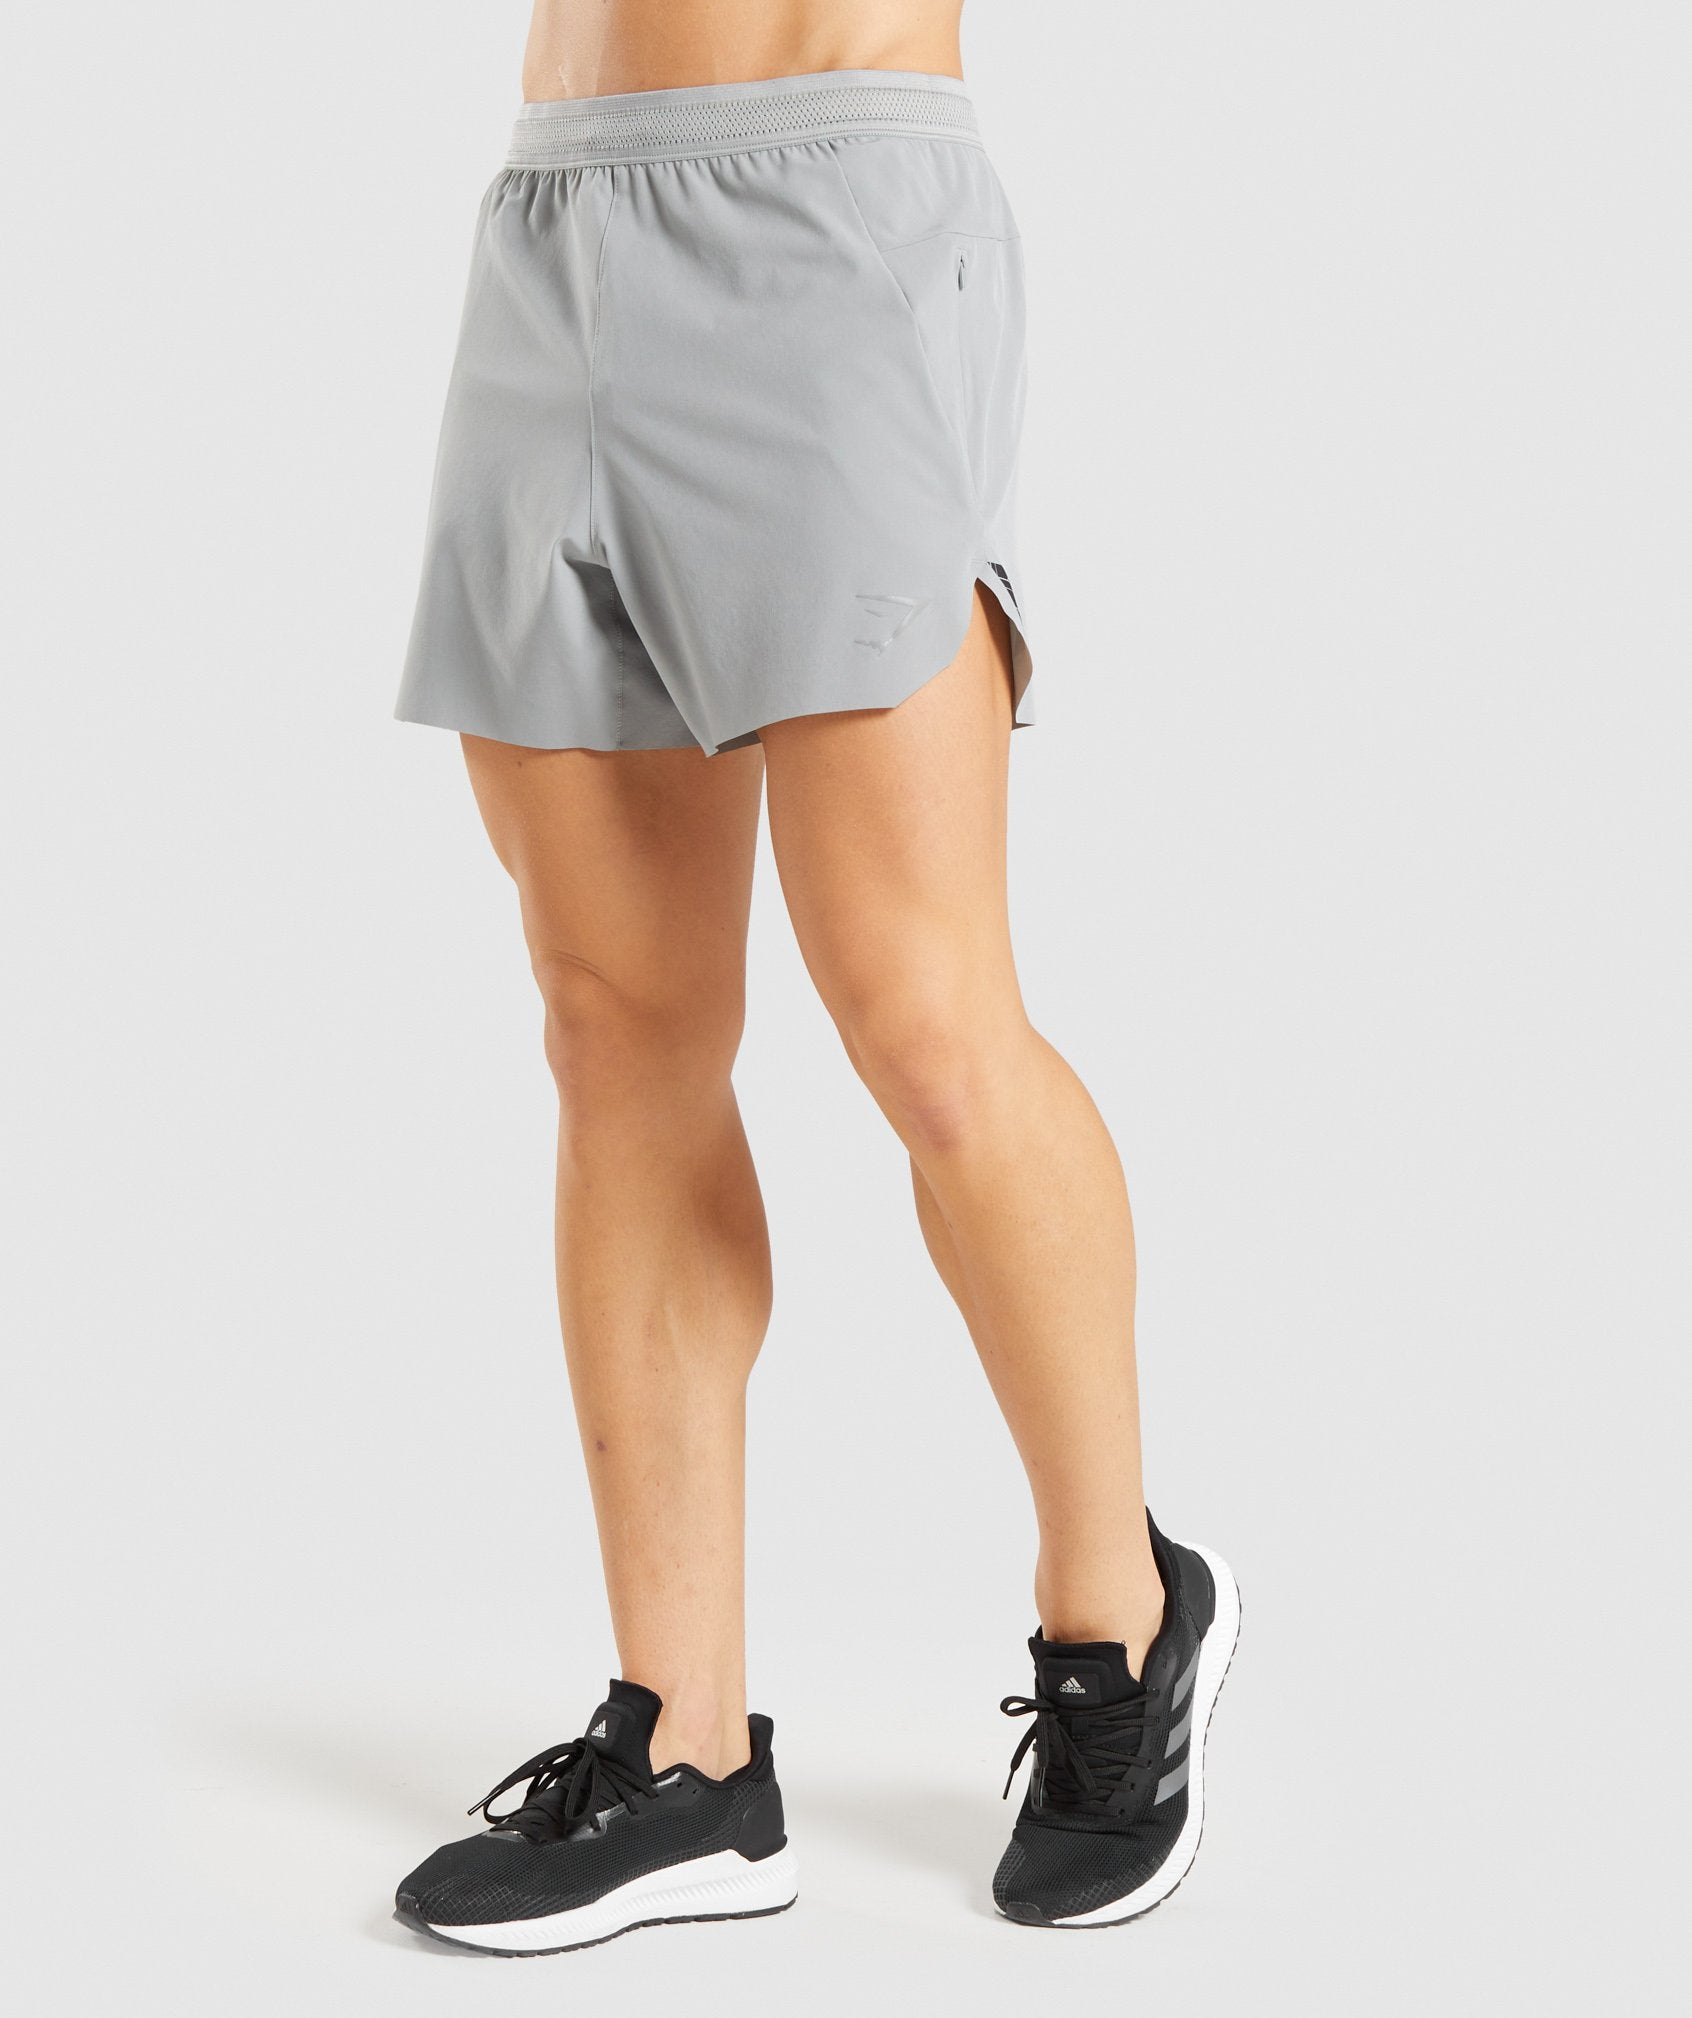 Classier: Buy Gymshark Speed 5 Shorts - Smokey Grey - Gymshark